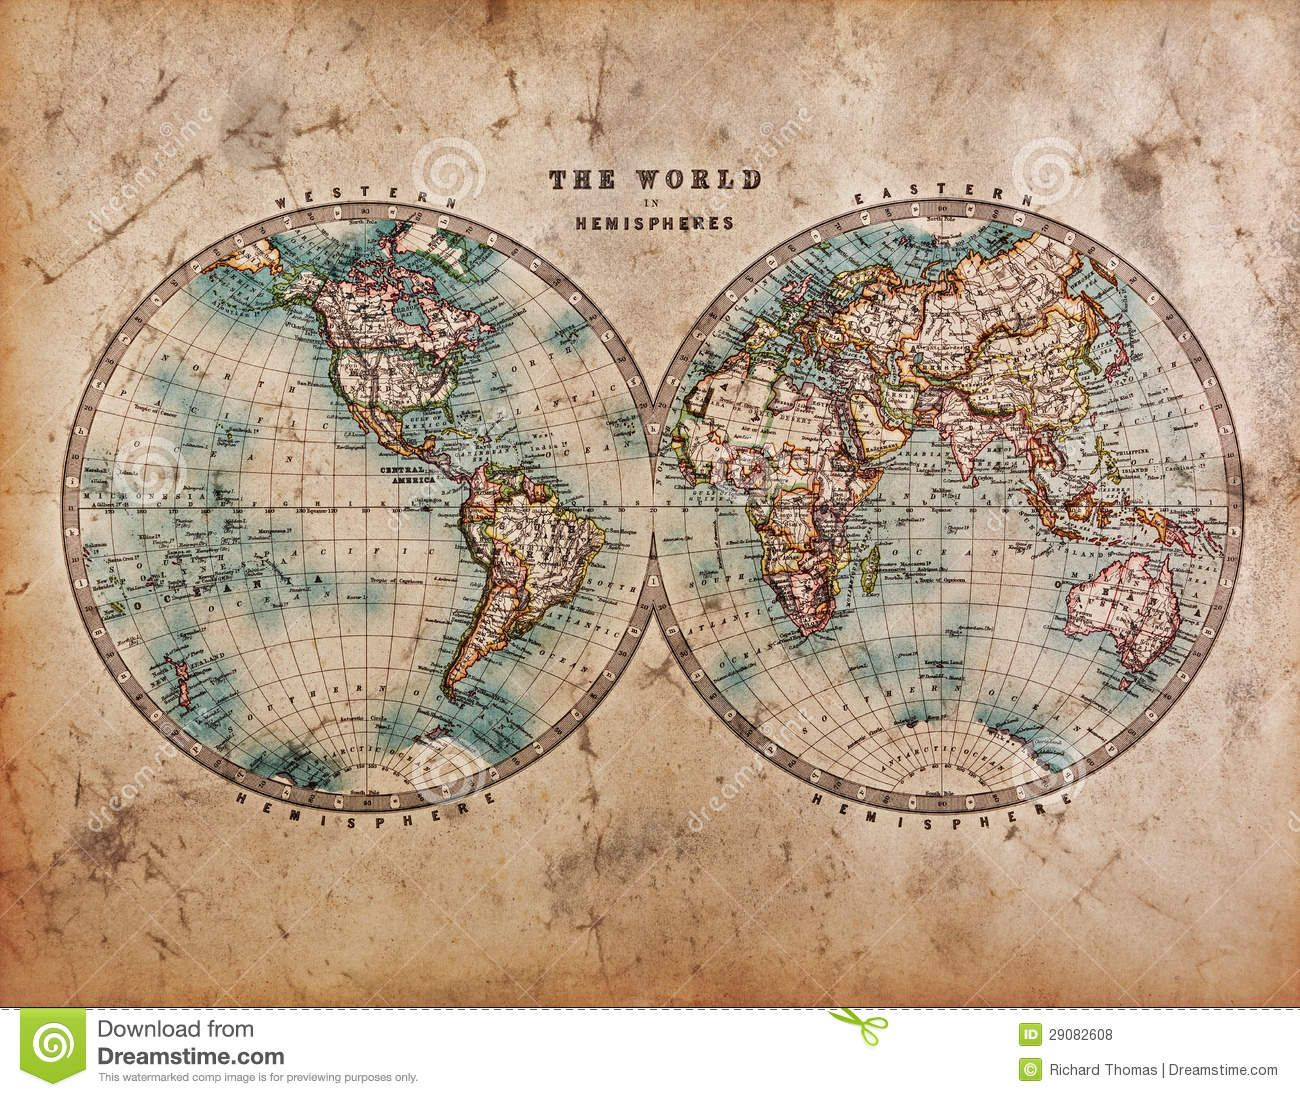 Old world map in hemispheres royalty free stock photos image old world map in hemispheres royalty free stock photos image 29082608 gumiabroncs Images